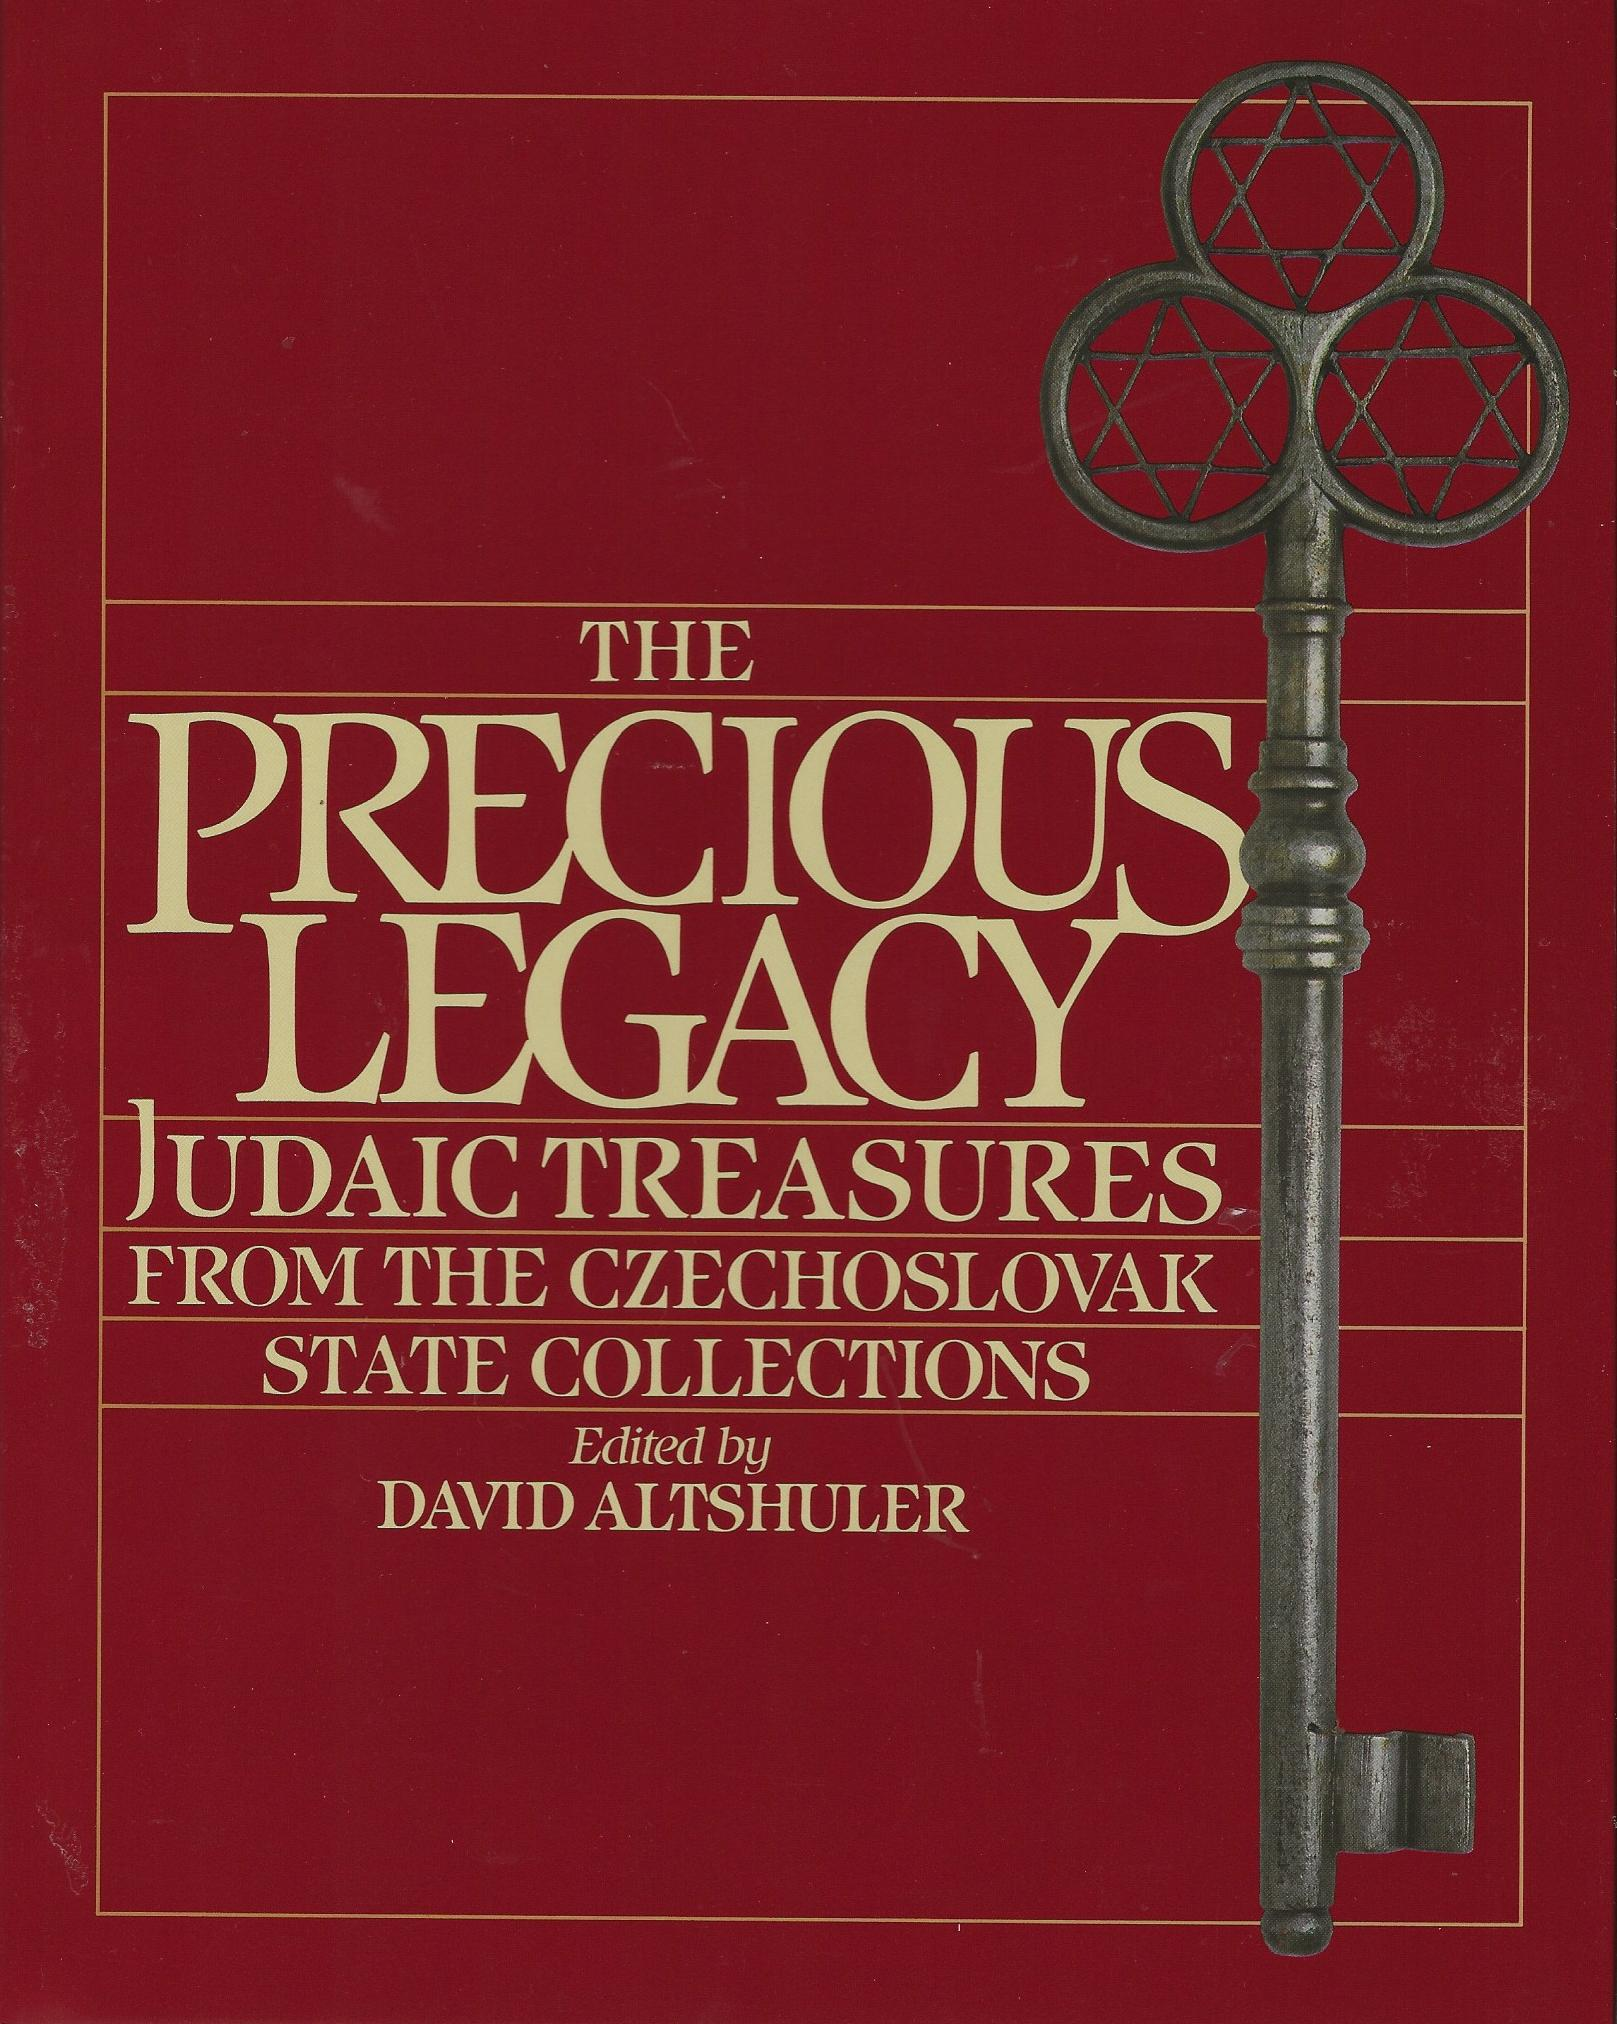 Image for THE PRECIOUS LEGACY ~ Judaic Treasures From The Czechoslovak State Collections